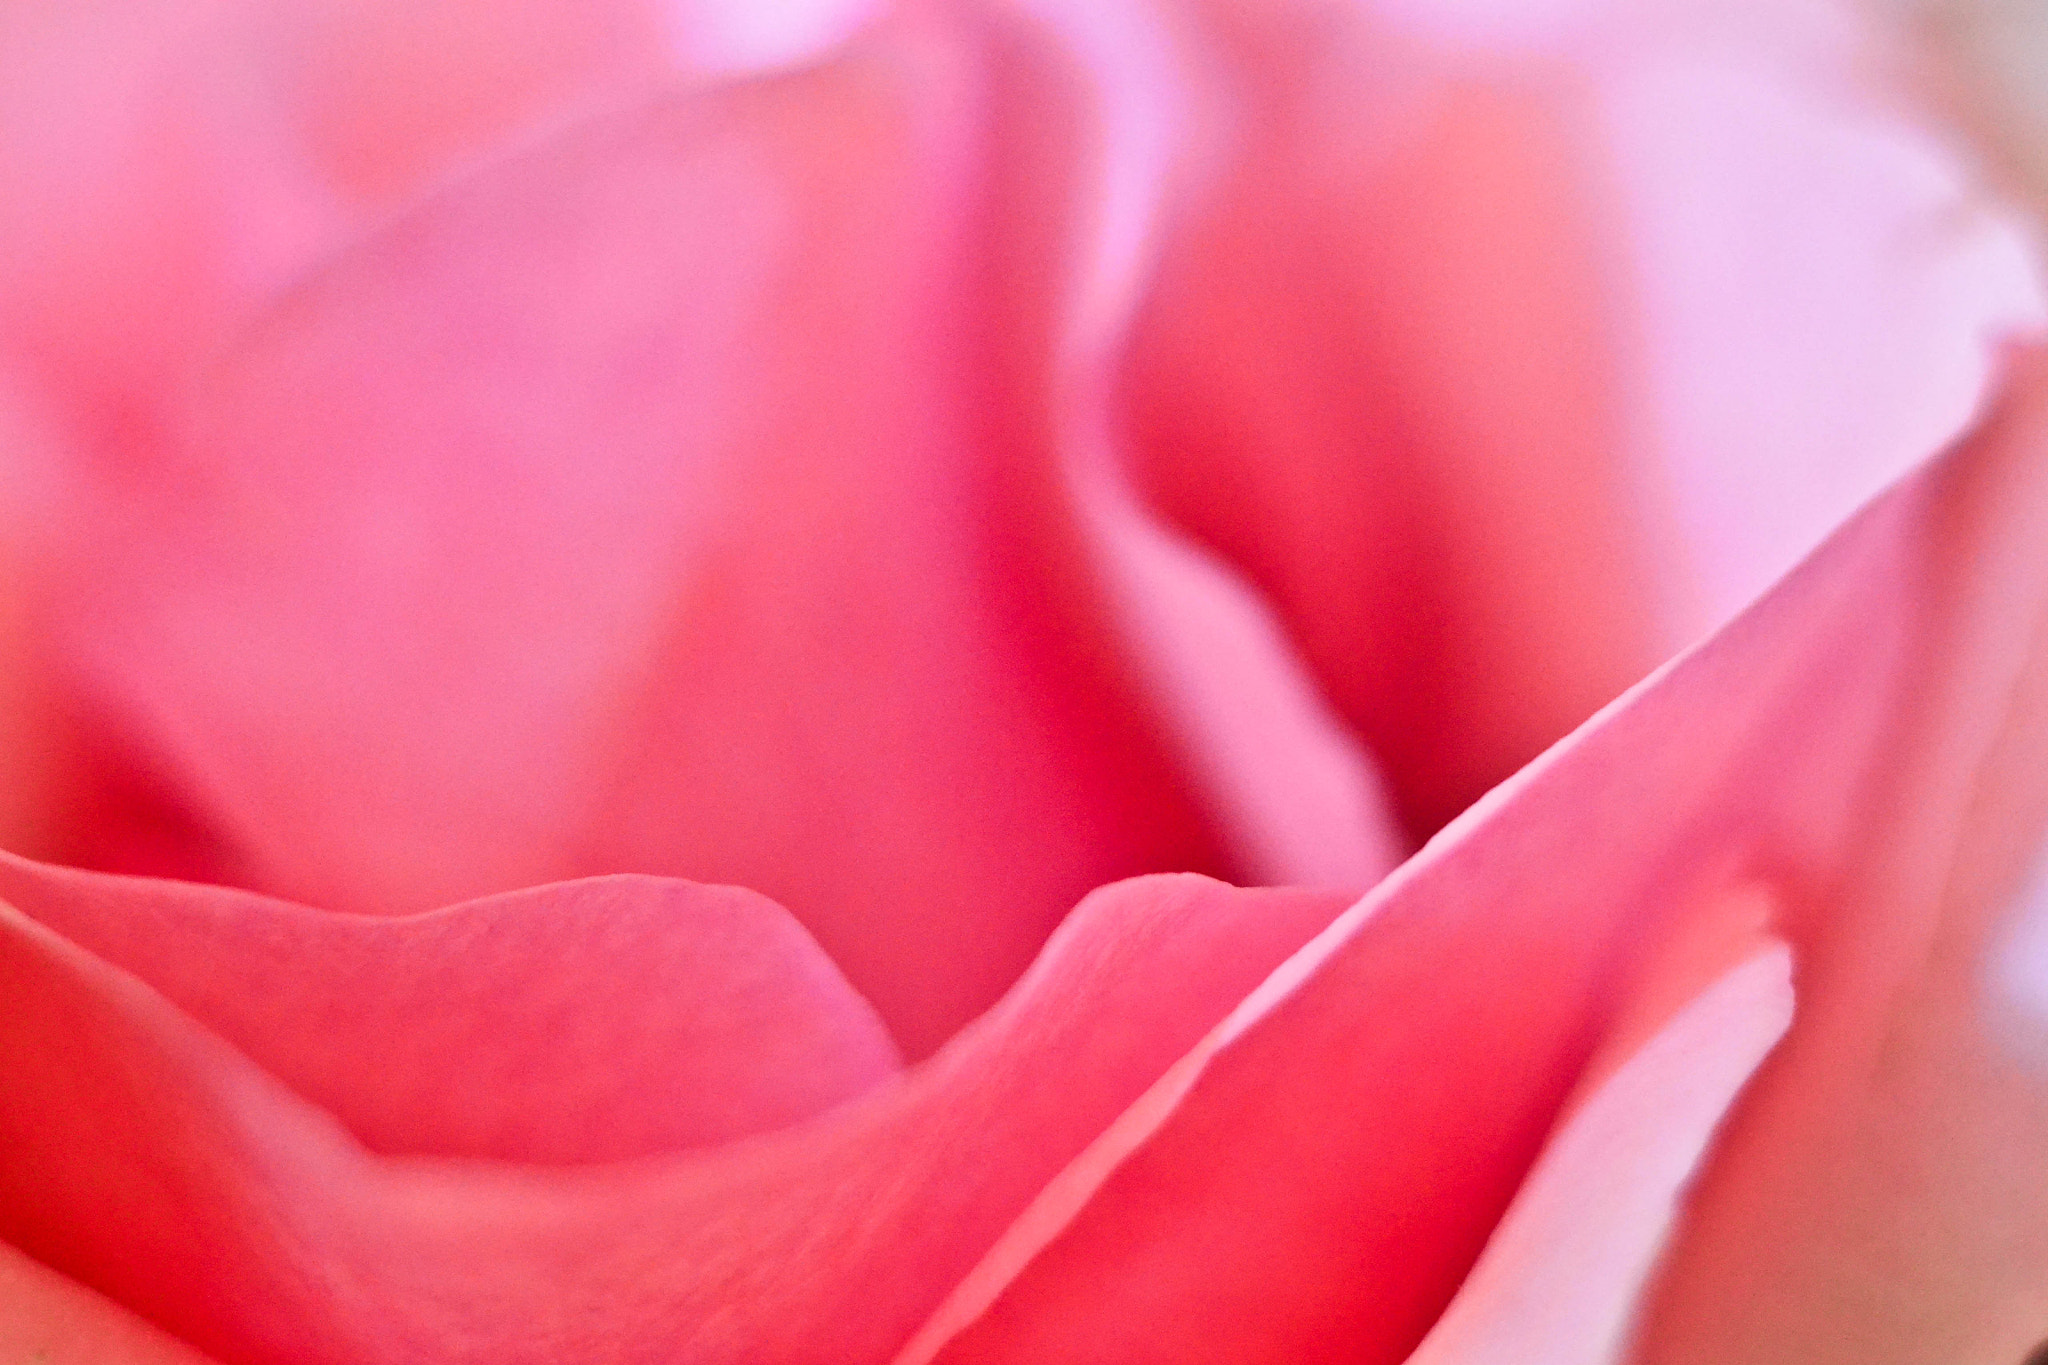 Photograph Pink rose by elizabeth ramos on 500px